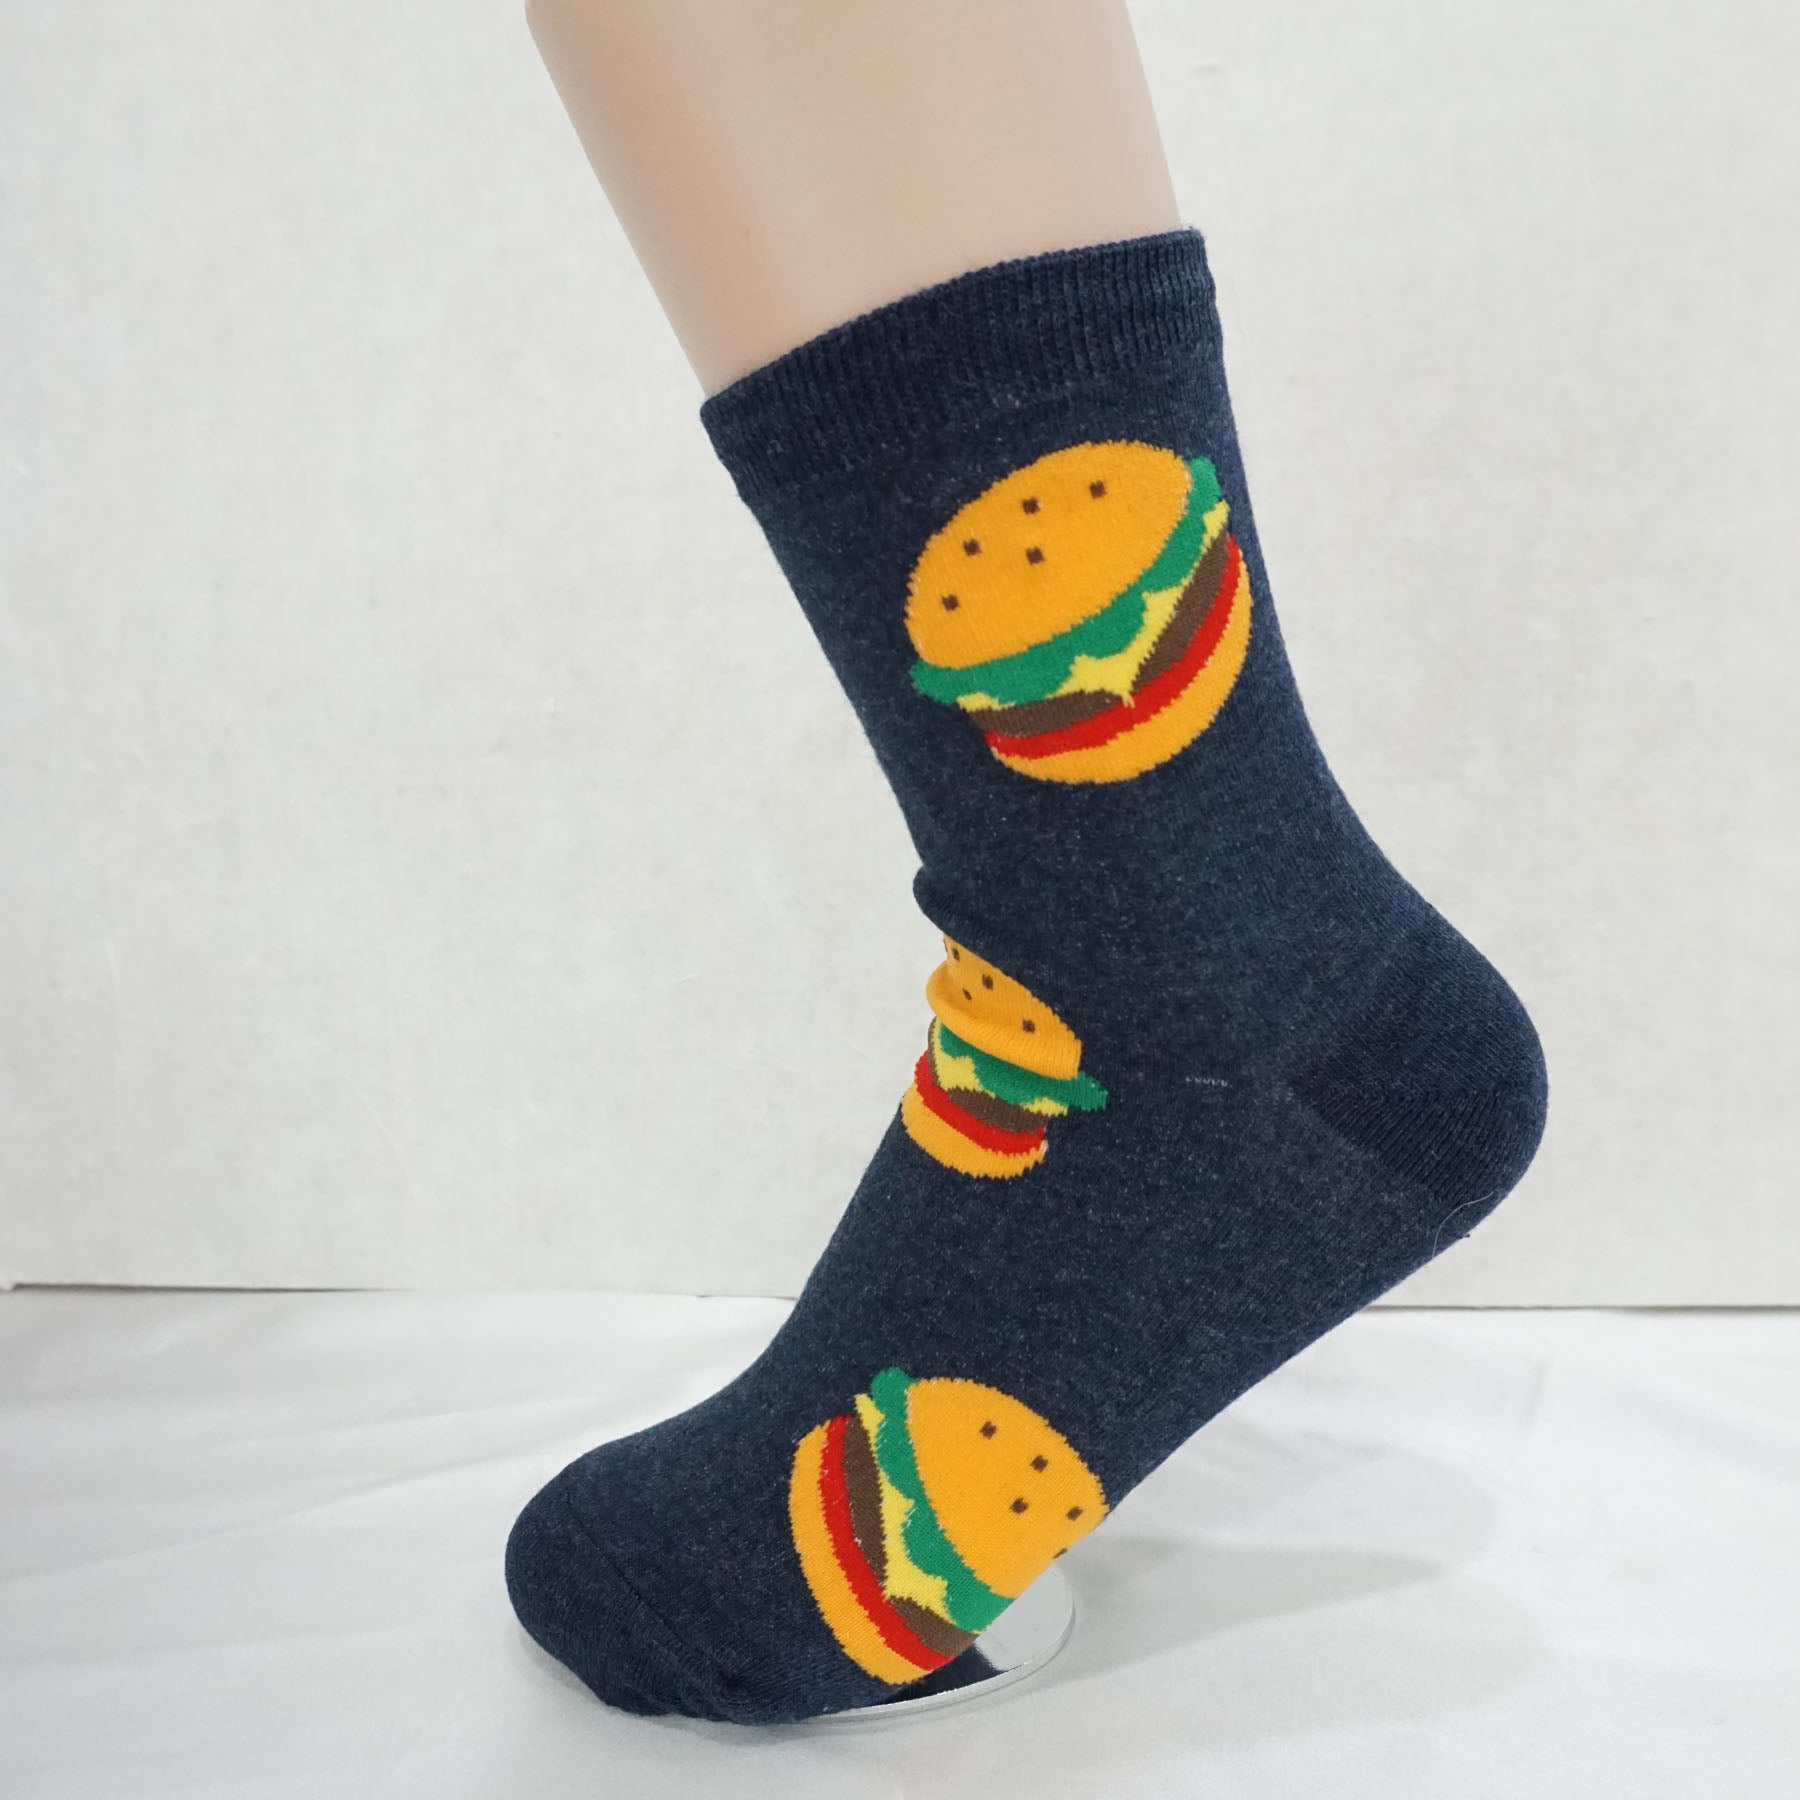 5Pairs Women's Cotton Street Food Print Novelty Micro Crew Socks